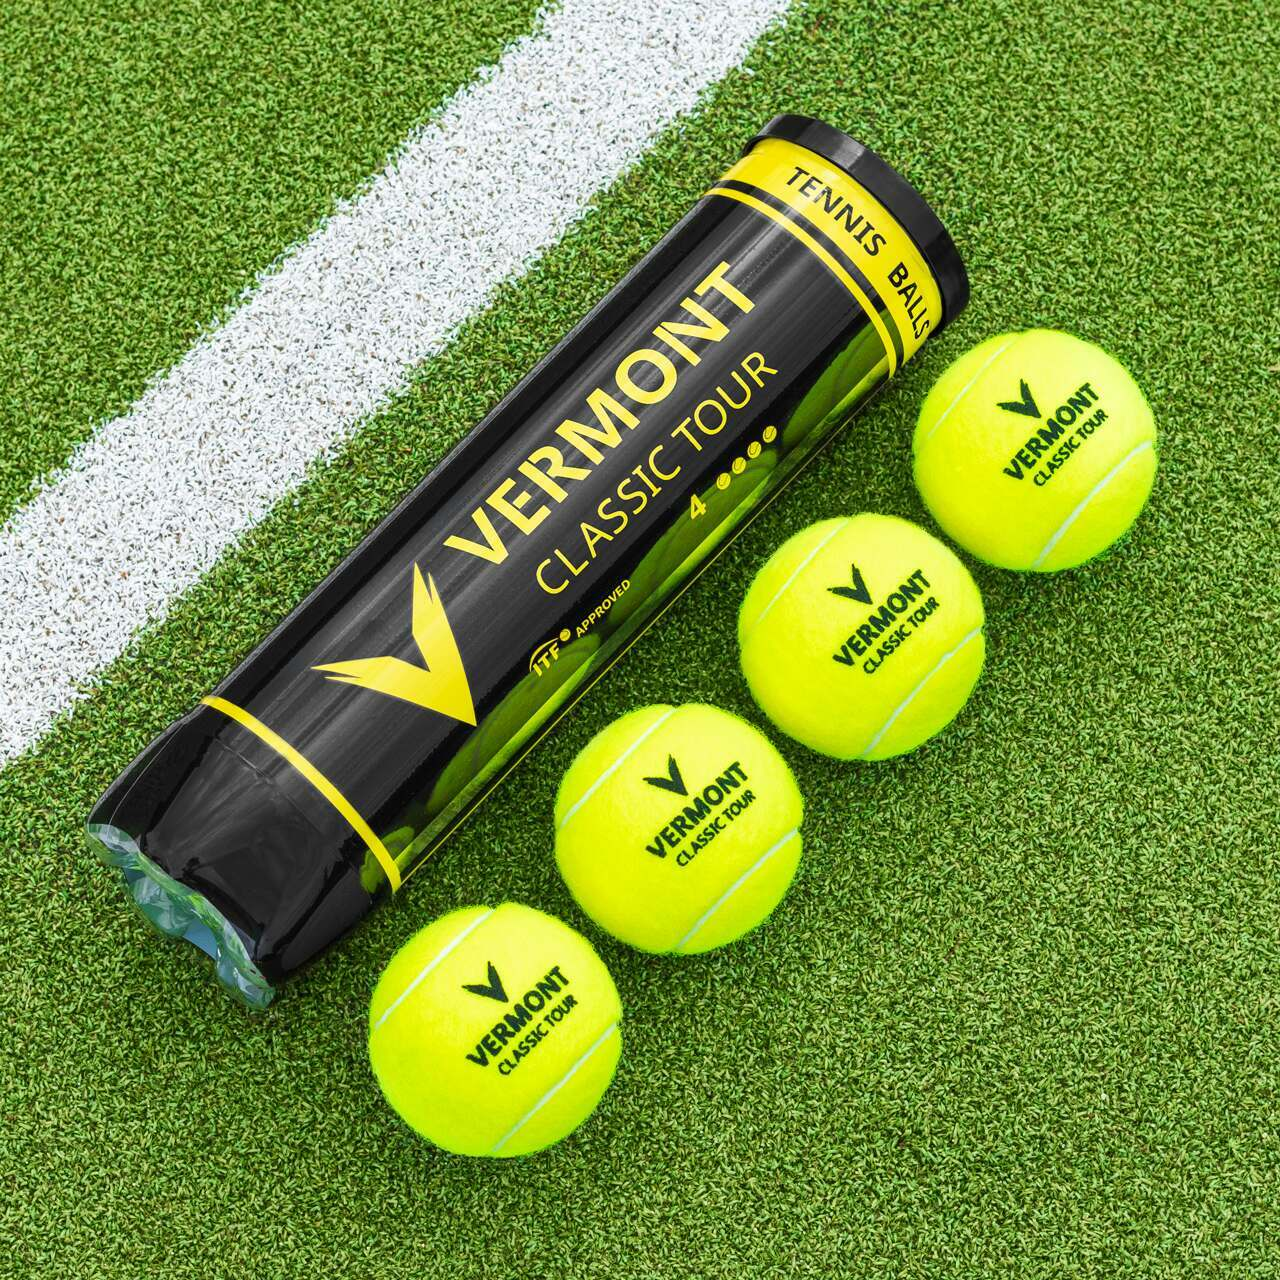 ITF Approved Tennis Balls | Tennis Balls For Tournaments